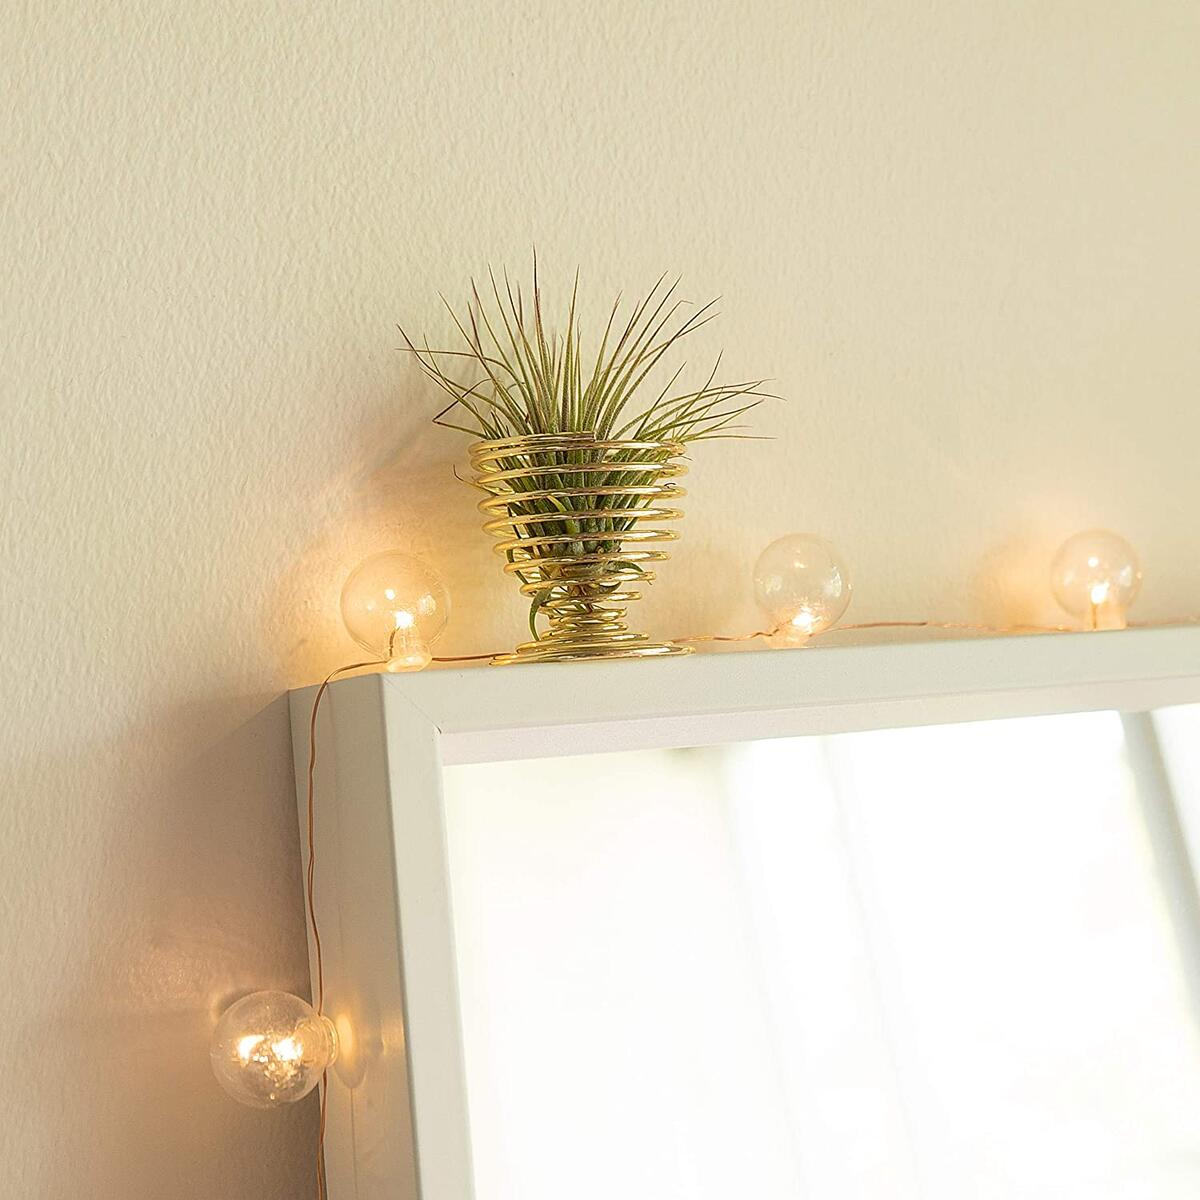 Air Plants Holders - Gold - Pack of 4